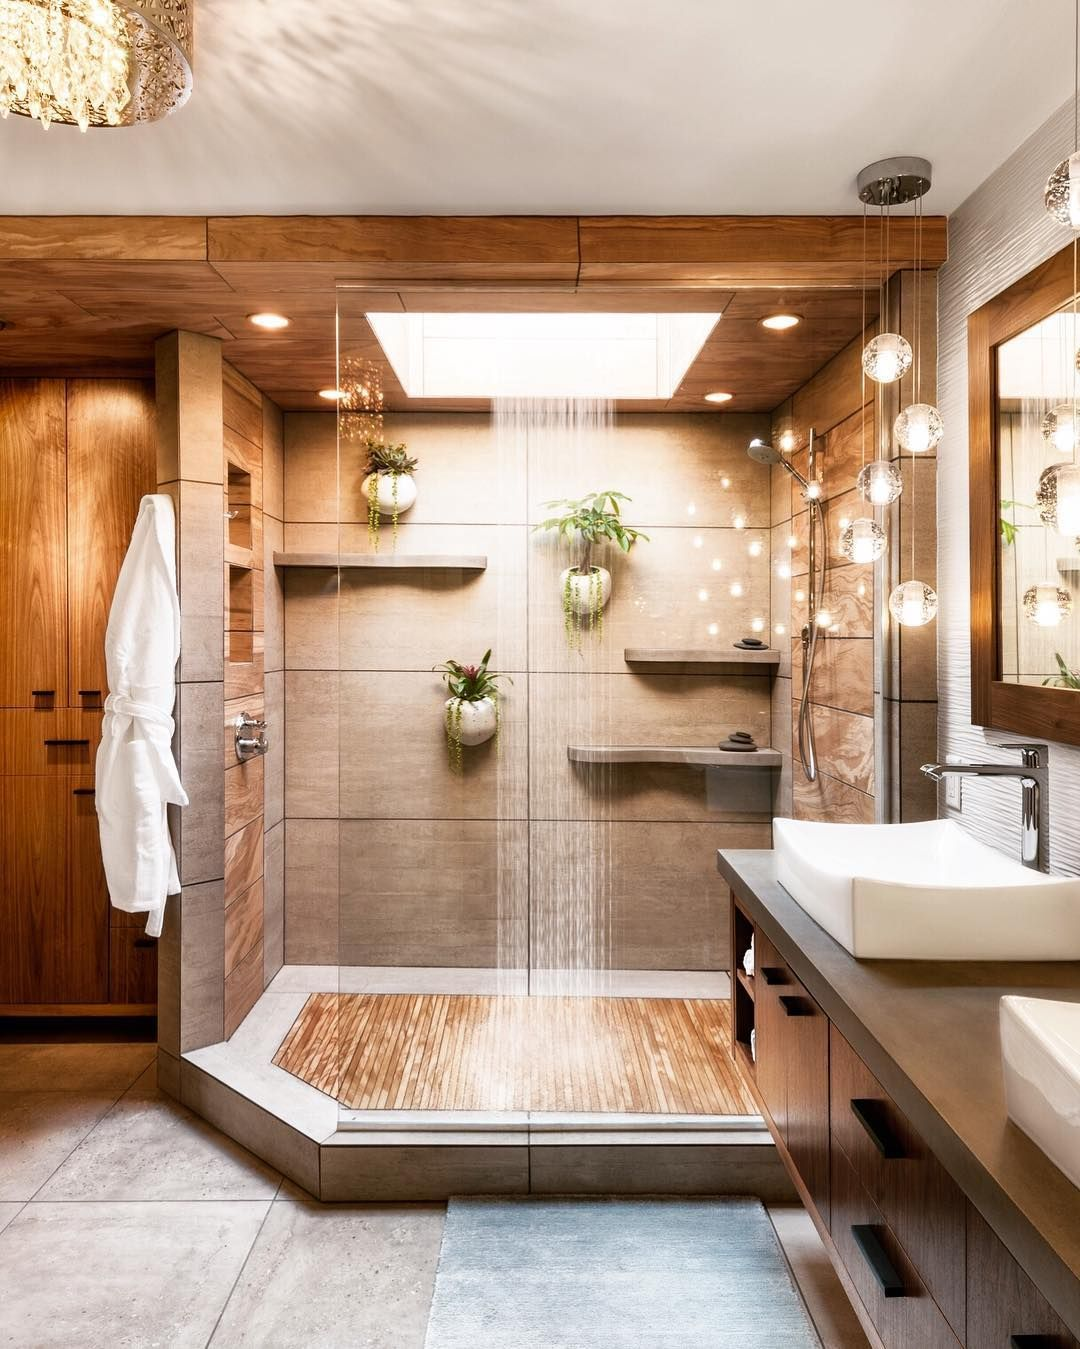 Mantis Design + Build wins 2018 National Contractor of the Year (Coty) Award for the Resplendent Bath project!  Thank you NARI!!!!